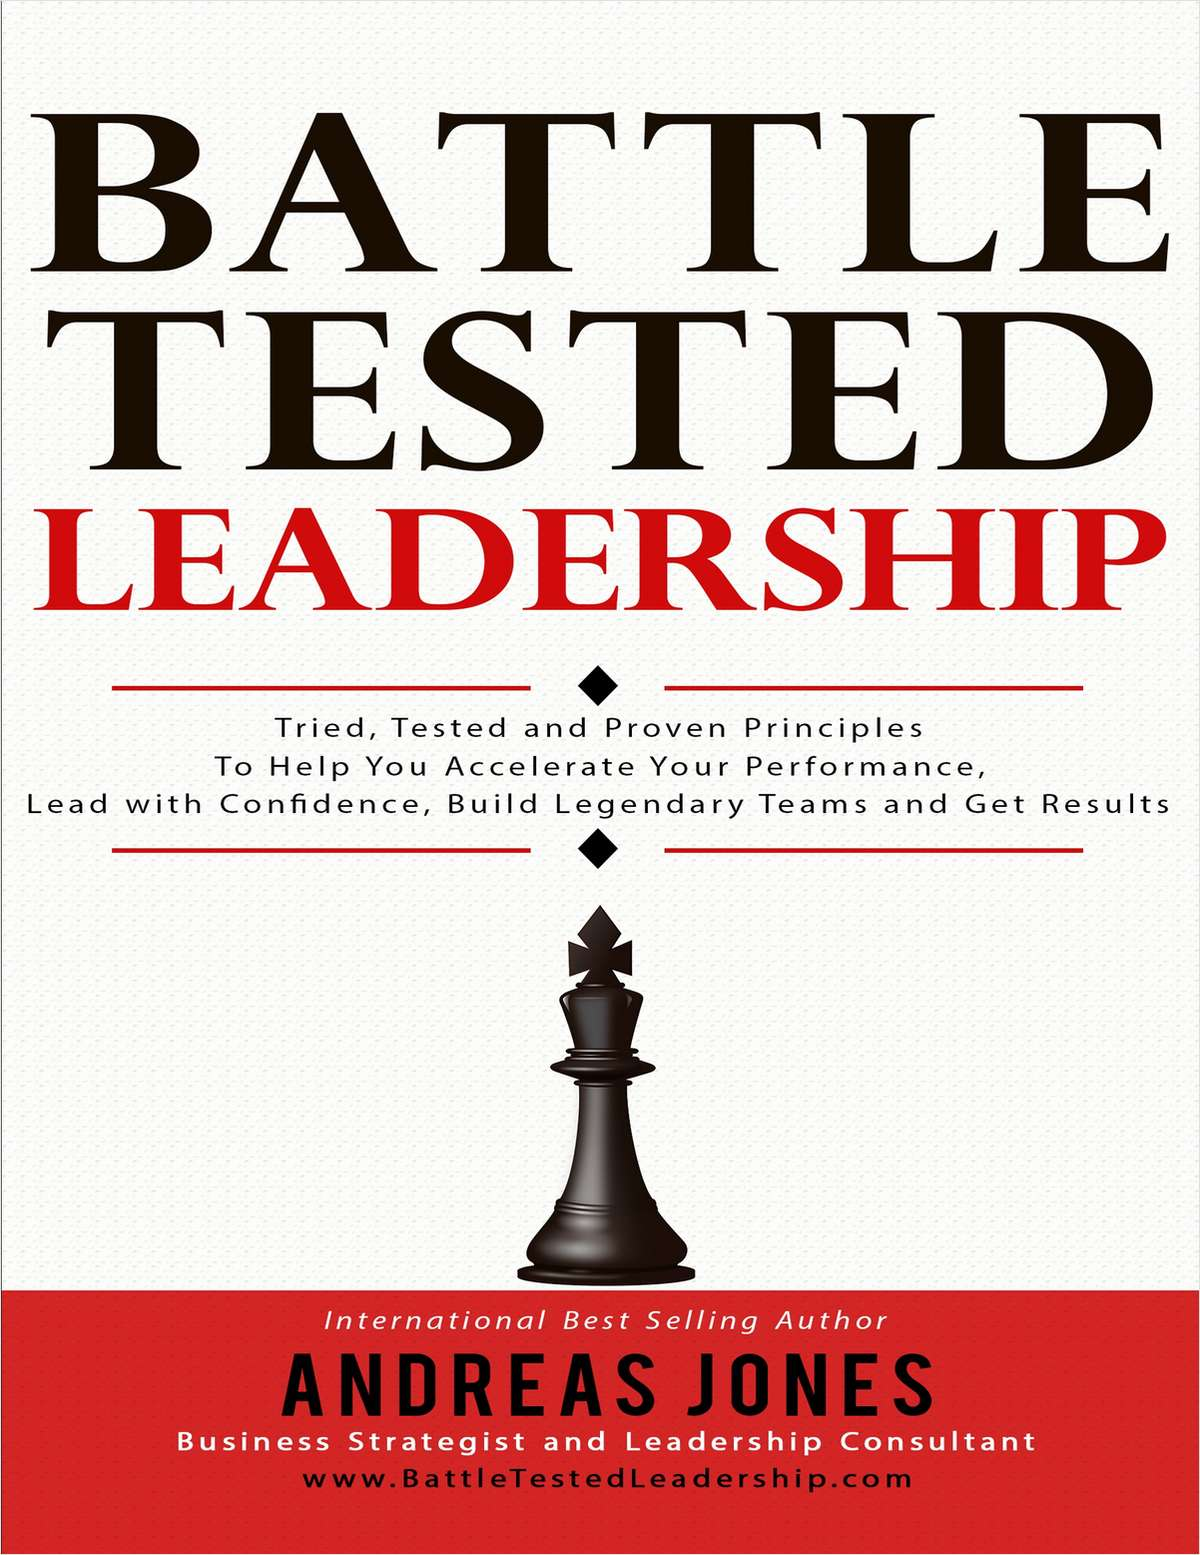 'Battle Tested Leadership ($14.95 Value) FREE For a Limited Time'